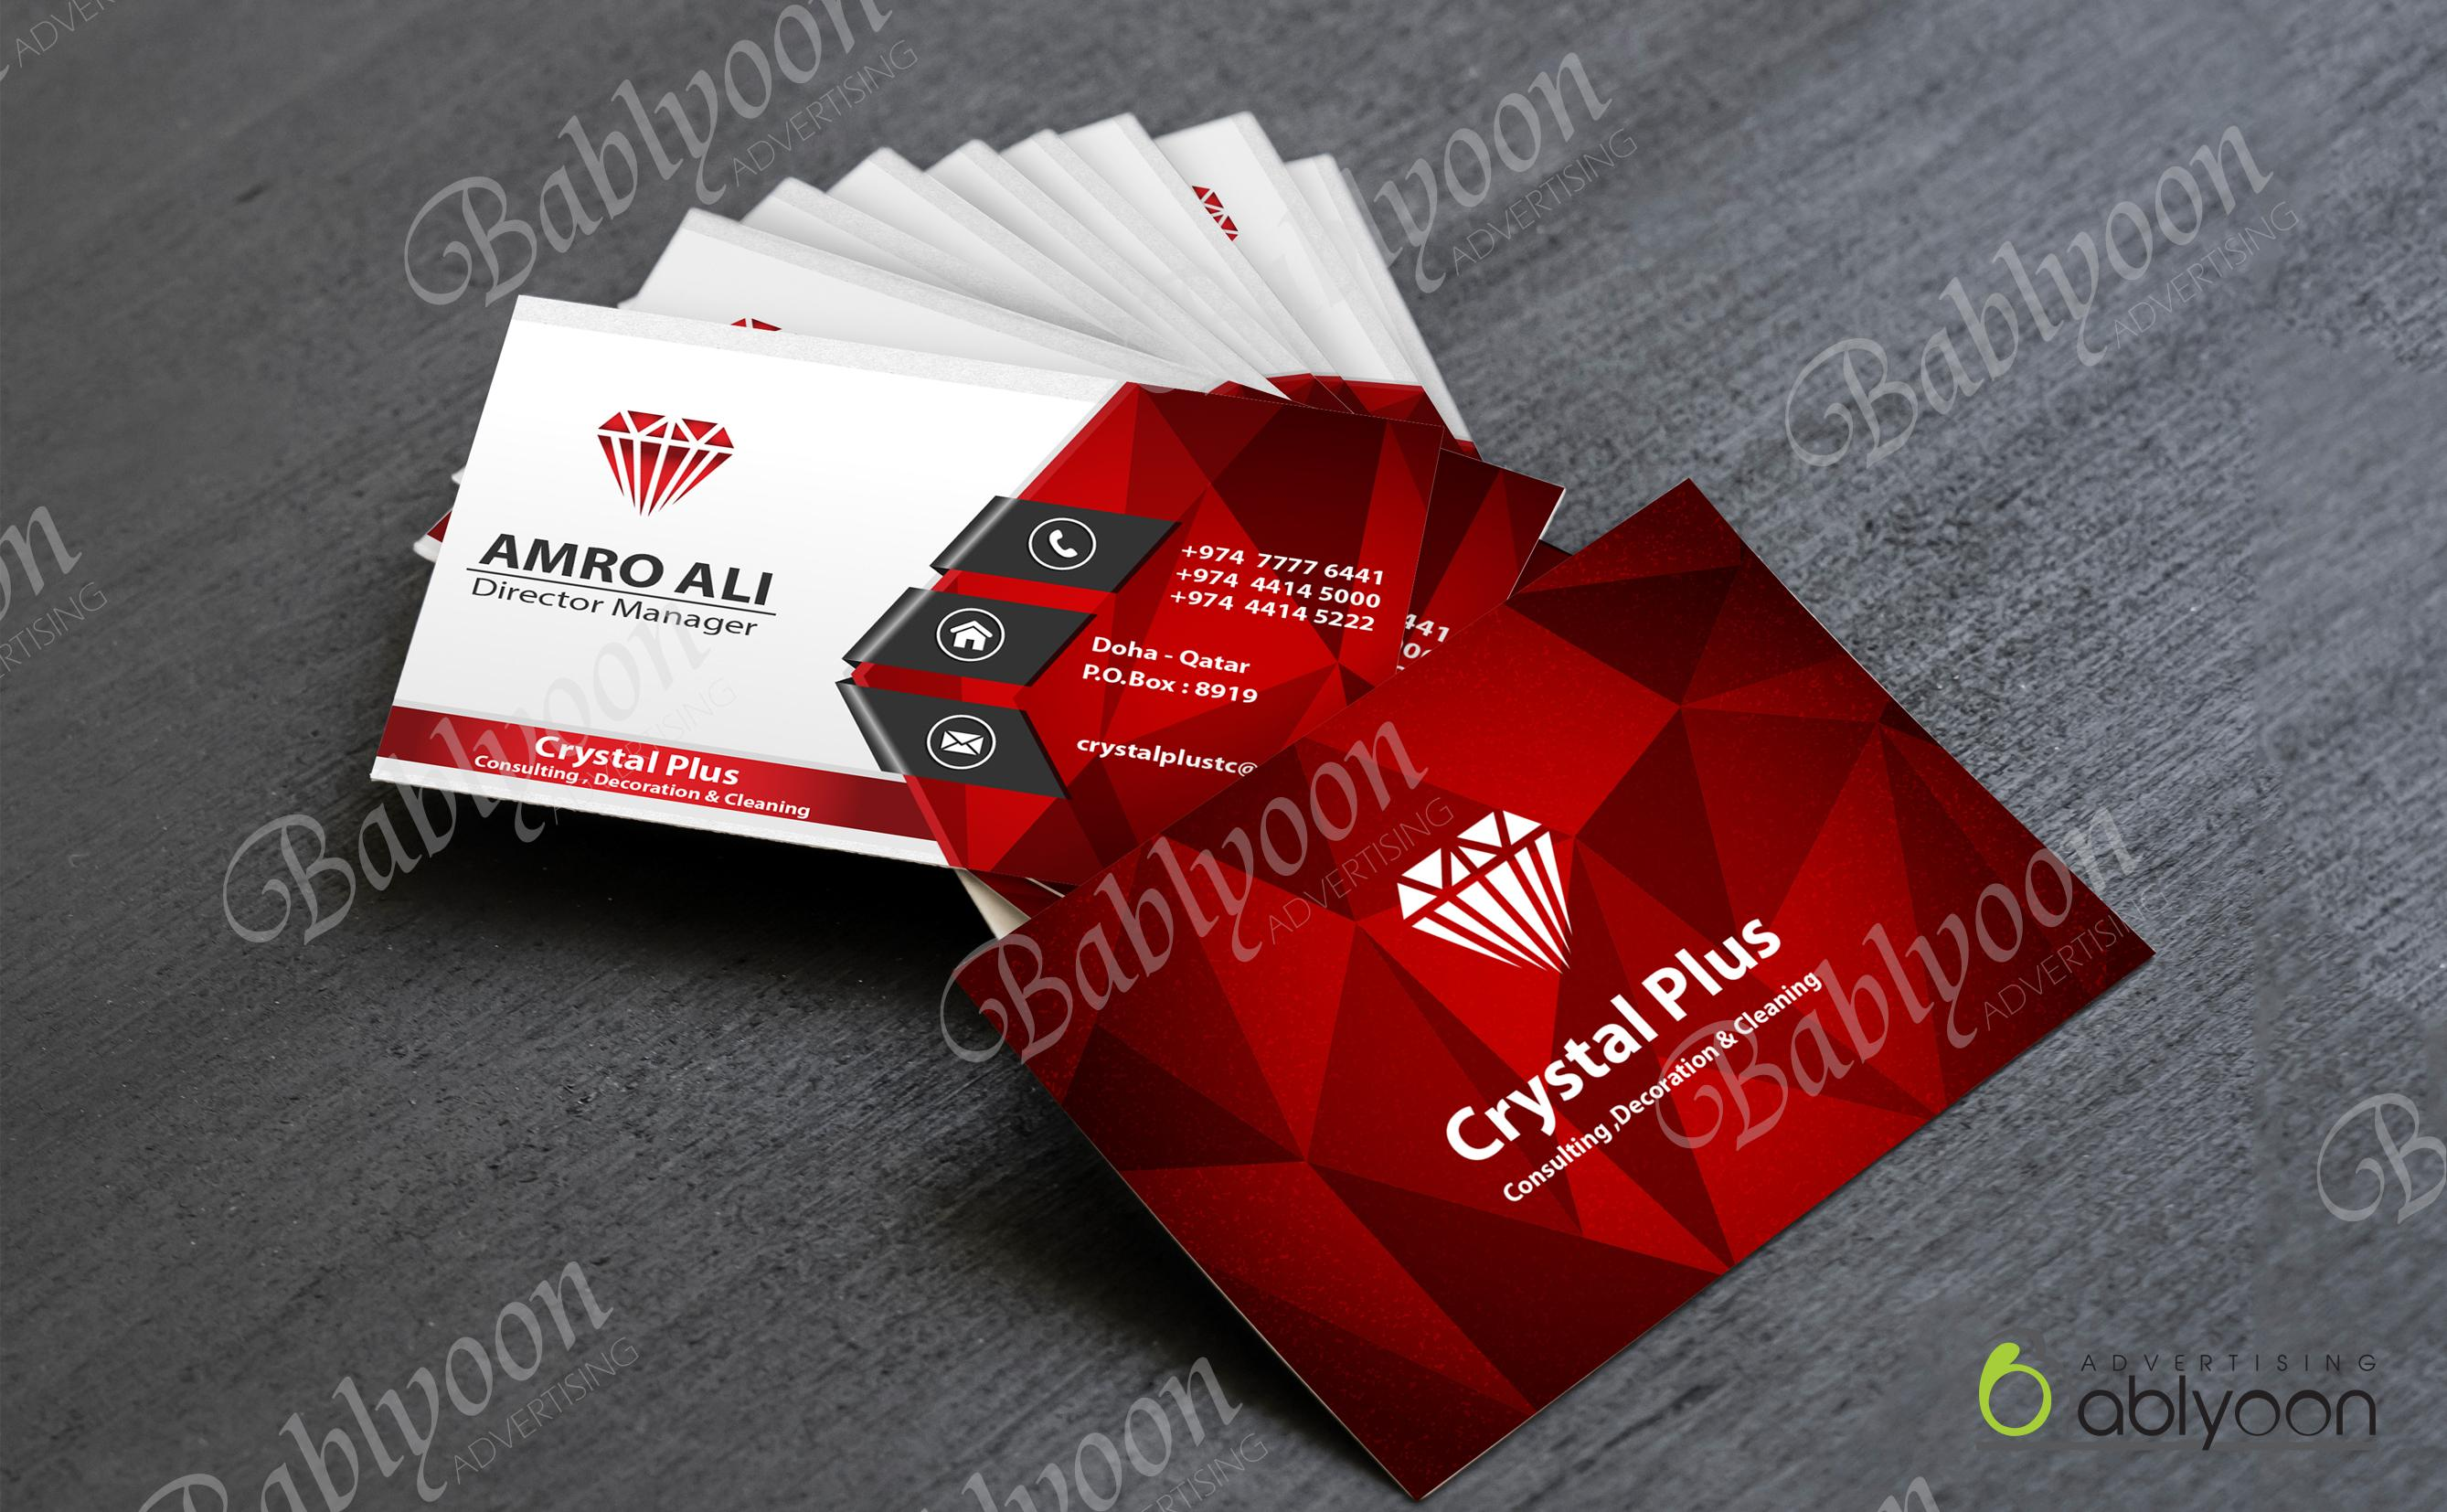 Business card printing within 15 minutes qatar living title title title title title title information within 15 minutes for business card colourmoves